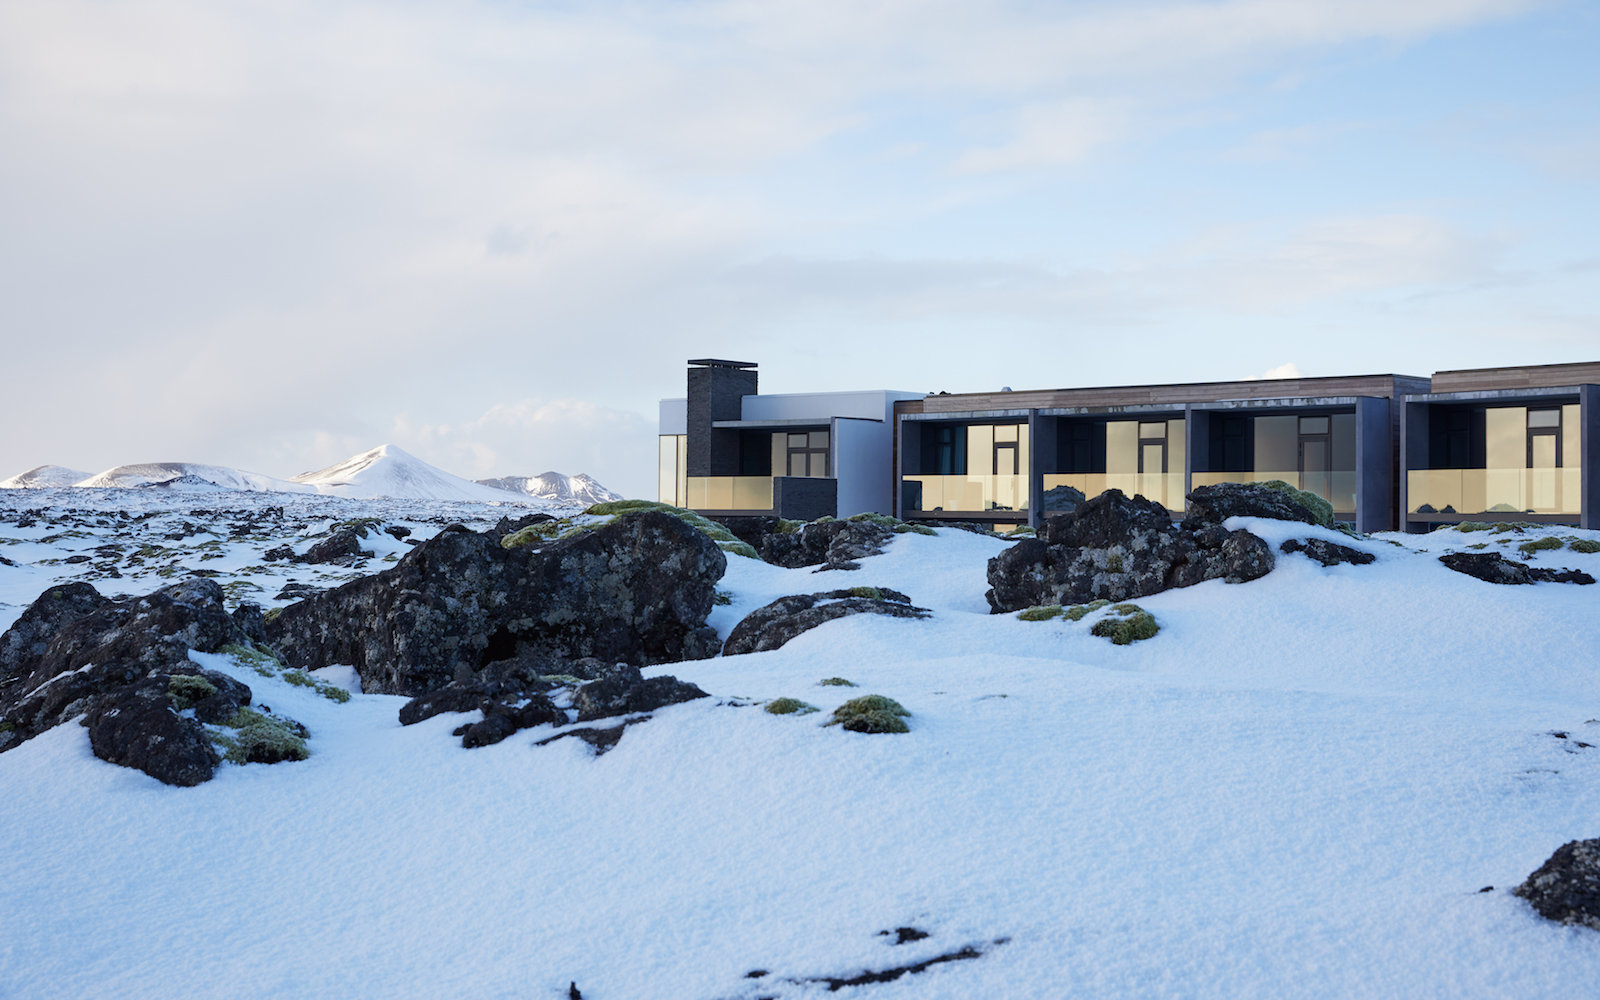 Iceland's Top Attraction Finally Has a Luxury Hotel